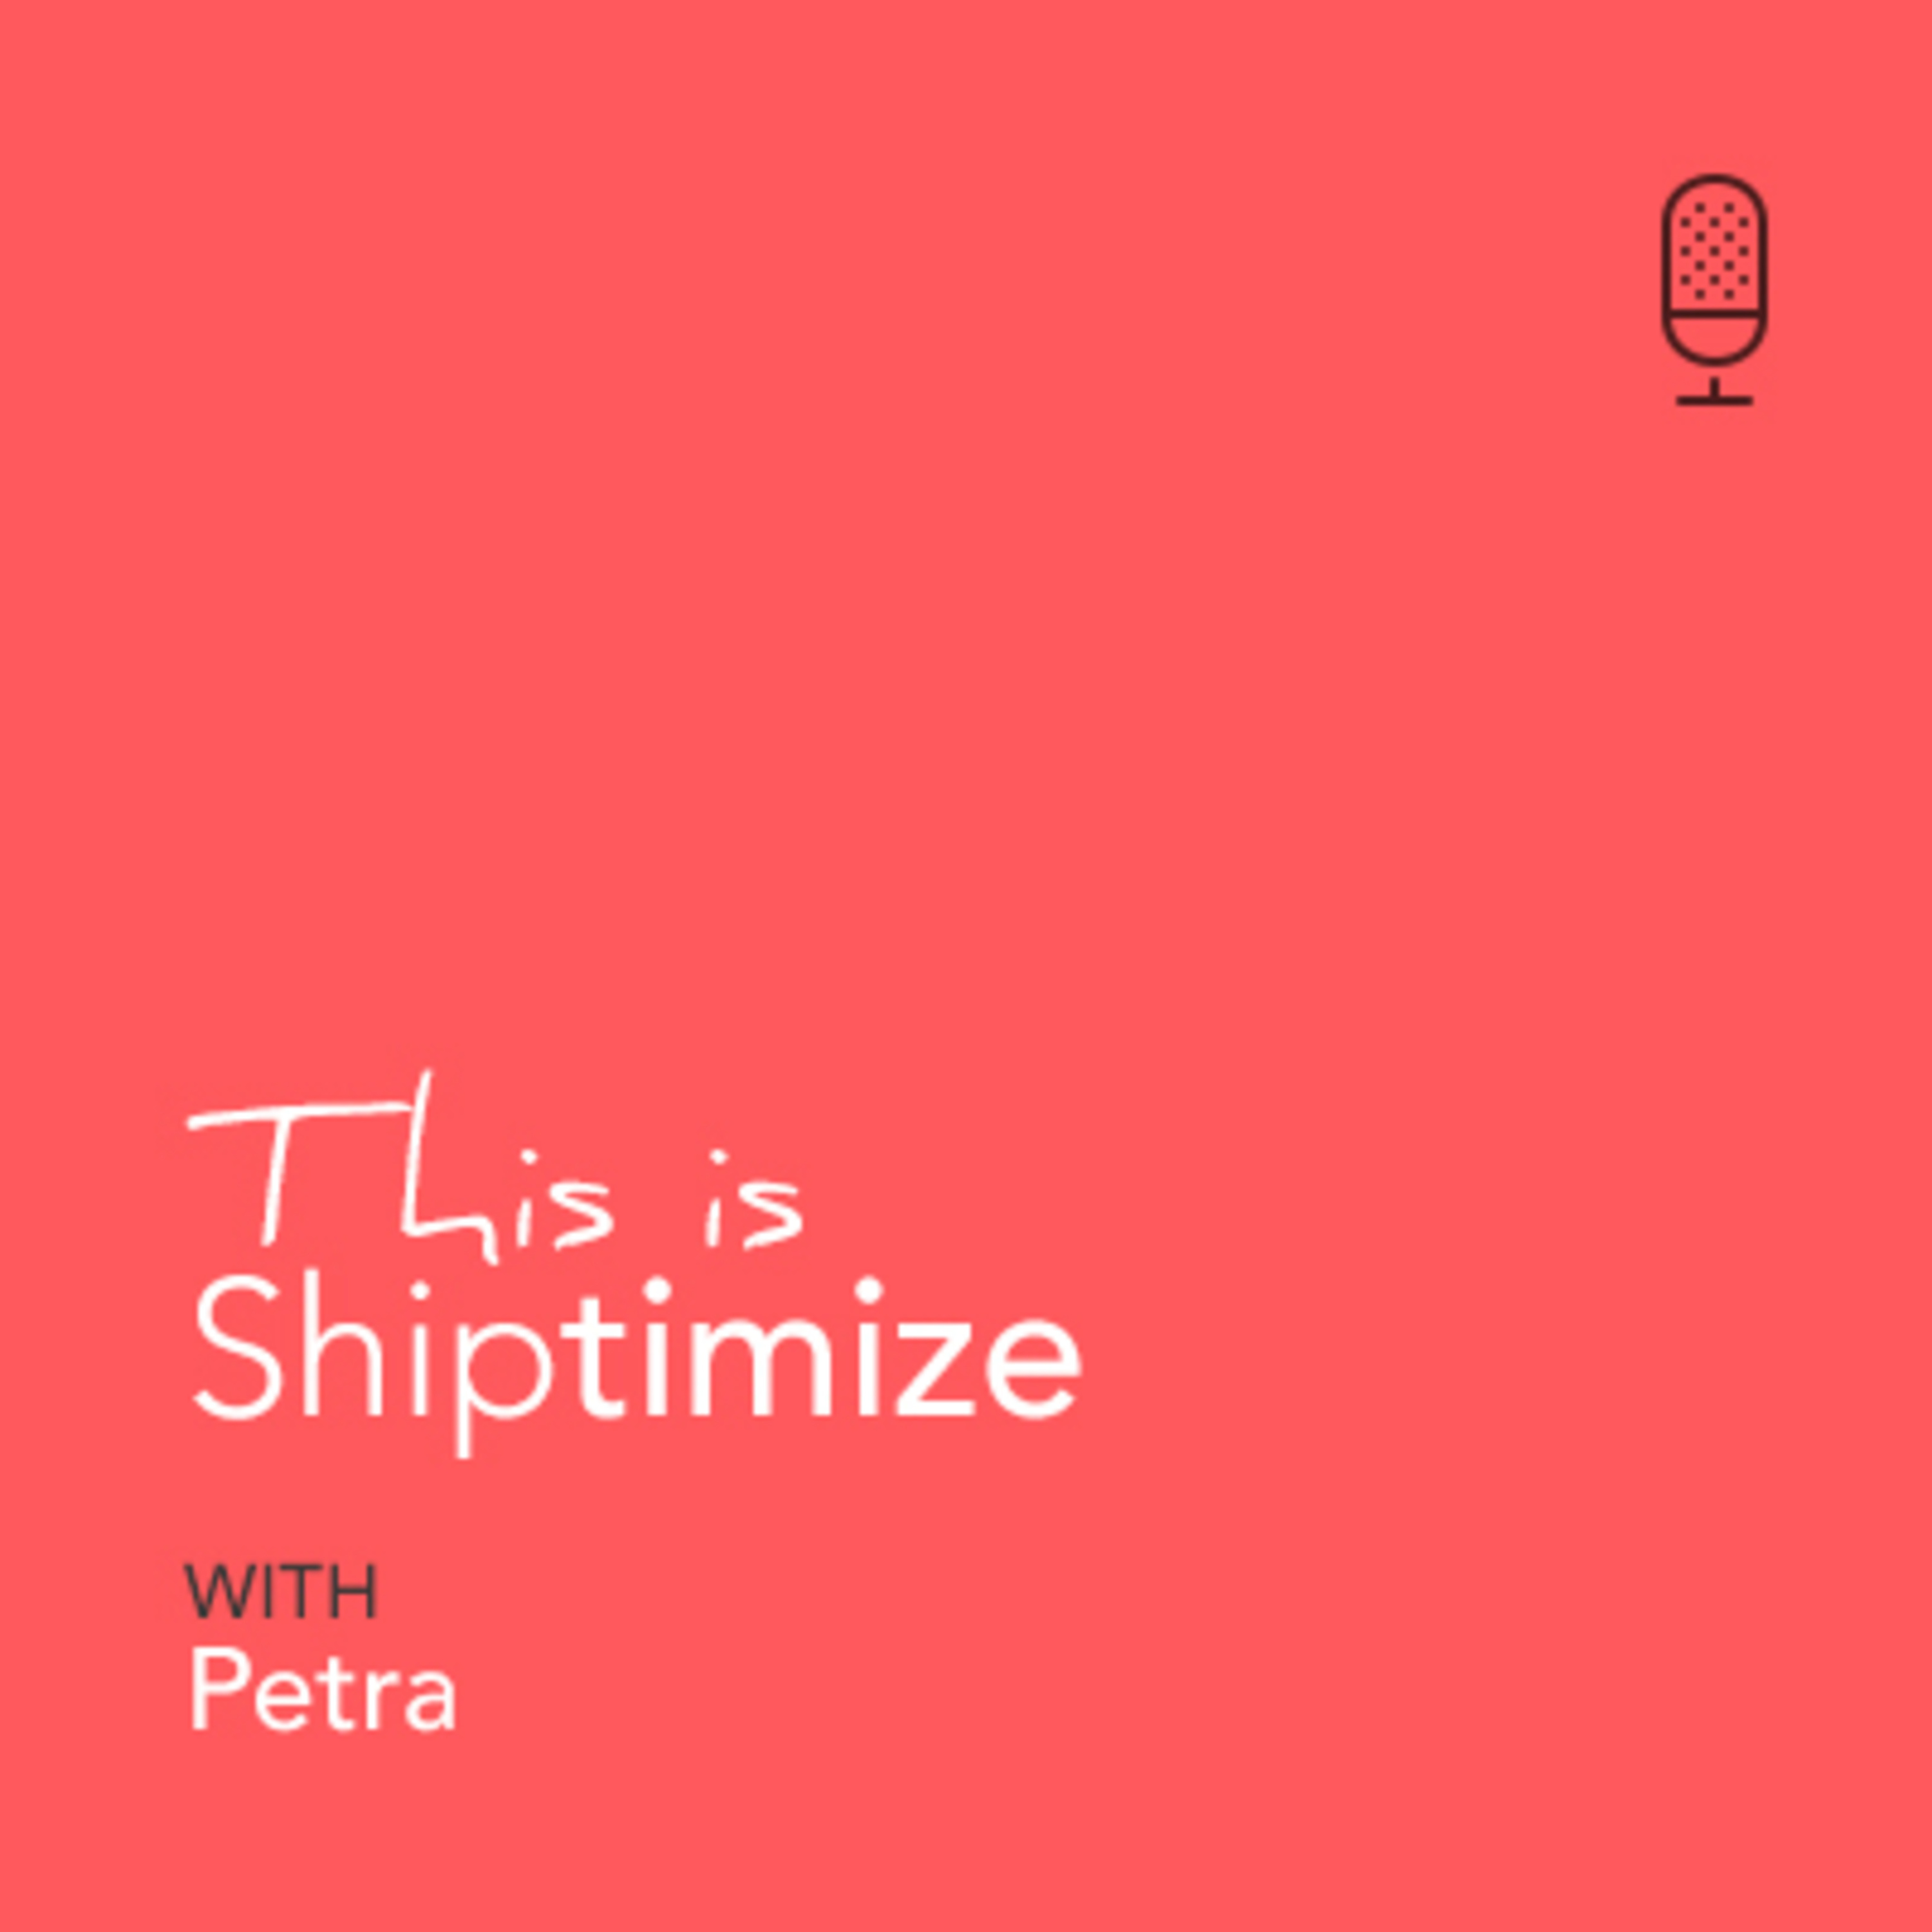 This is Shiptimize - Meet Petra!